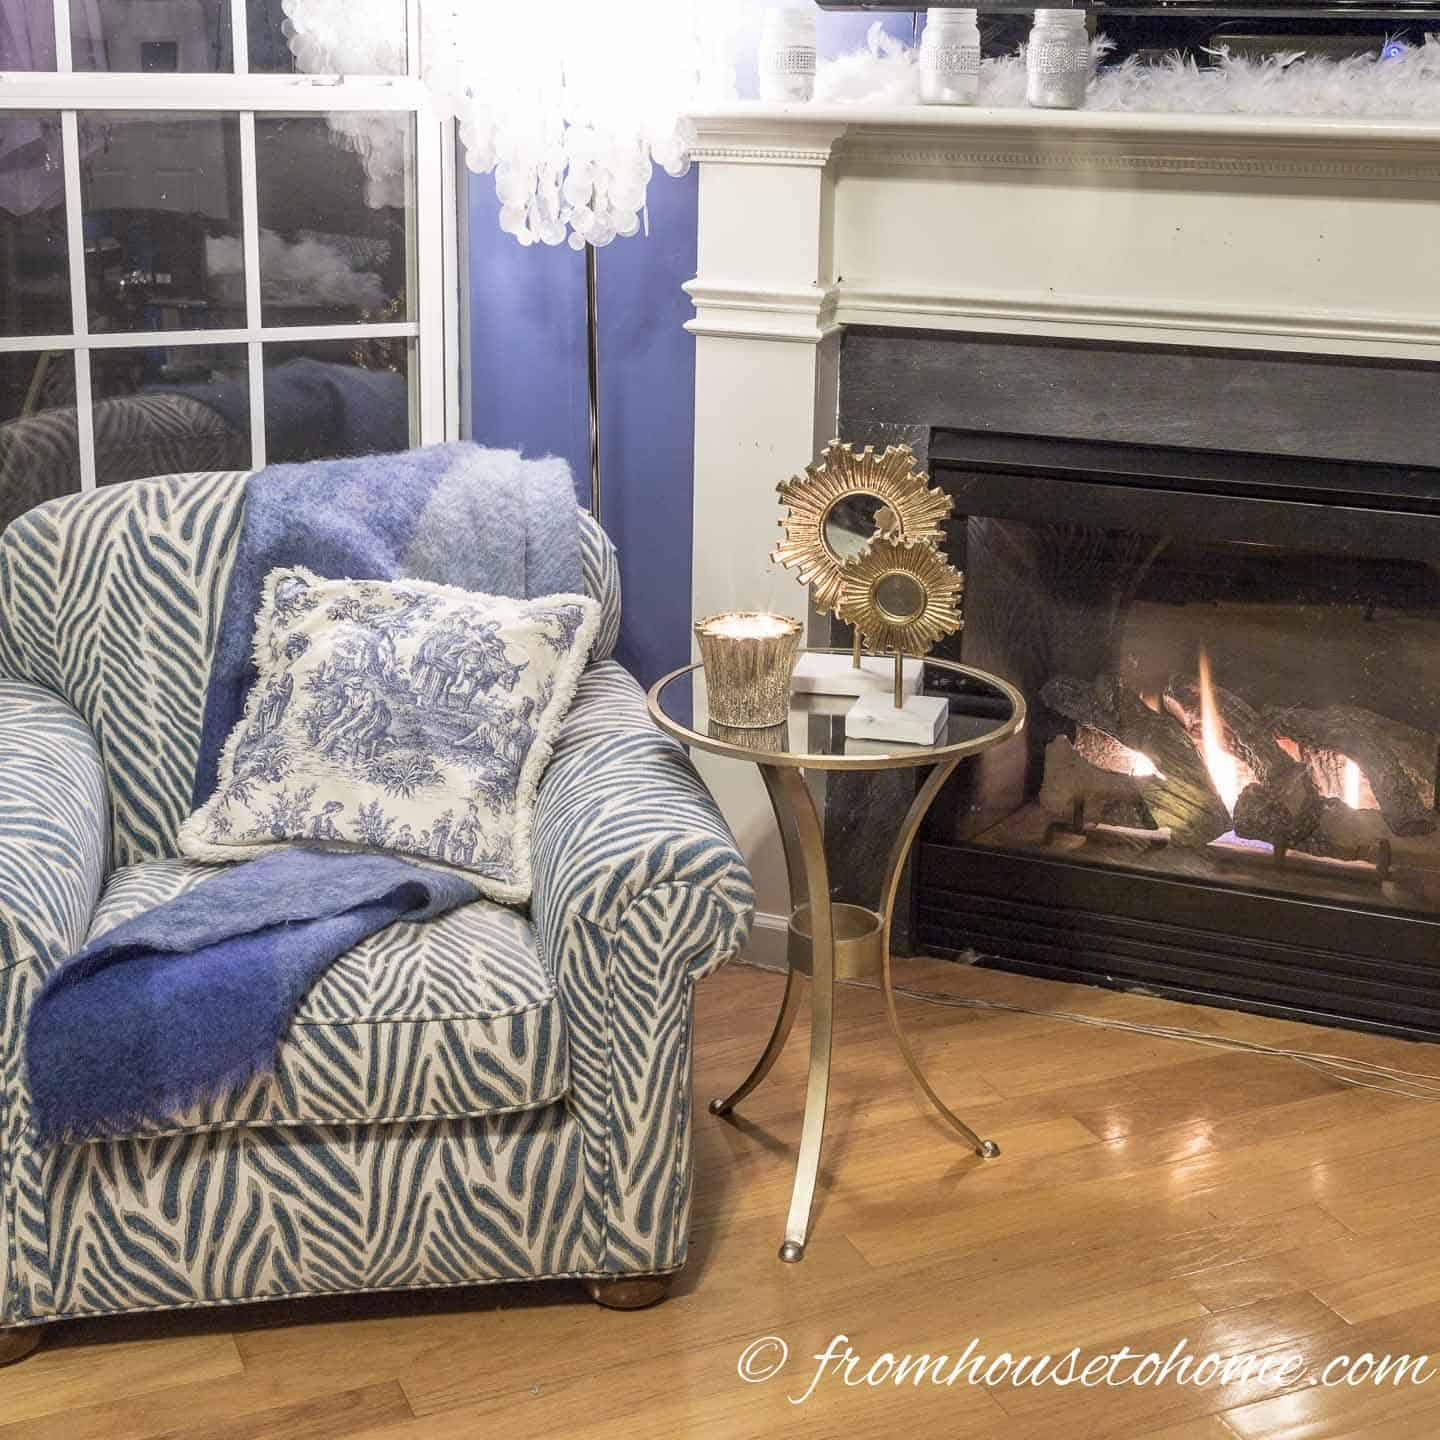 Cozy Room Decor How To Make Your Home More Cozy For Fall